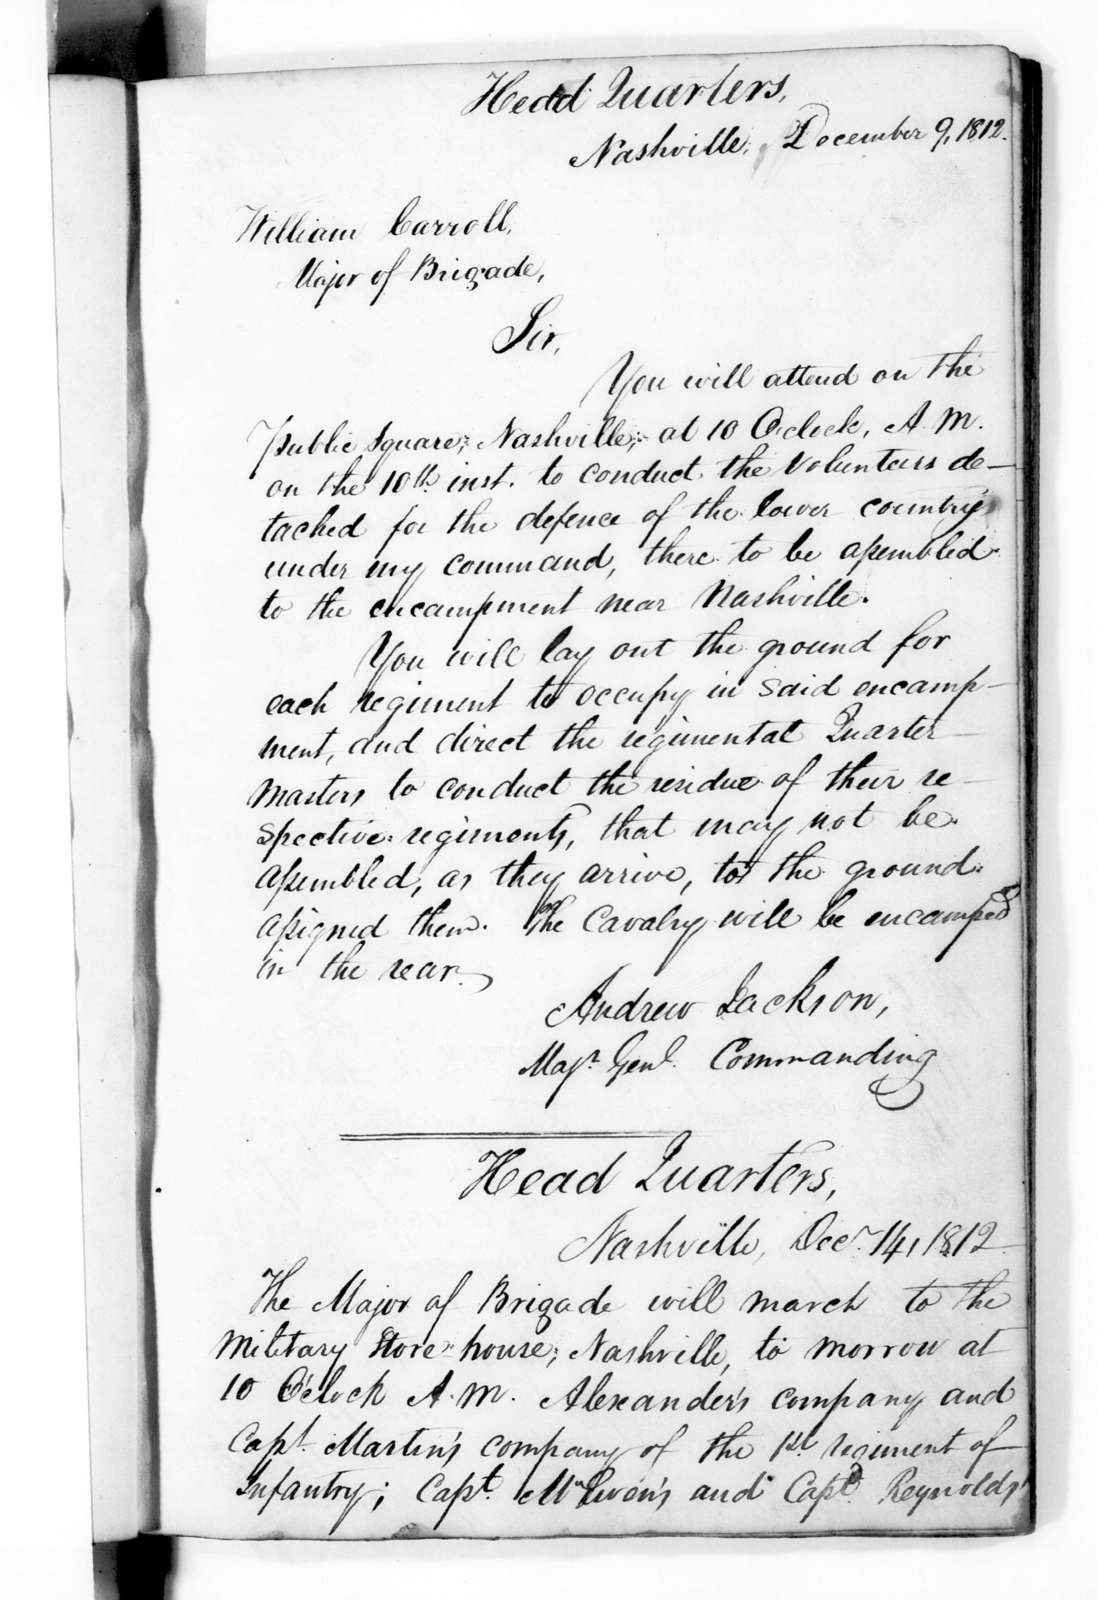 Andrew Jackson - Record Books - Jackson Order Book during